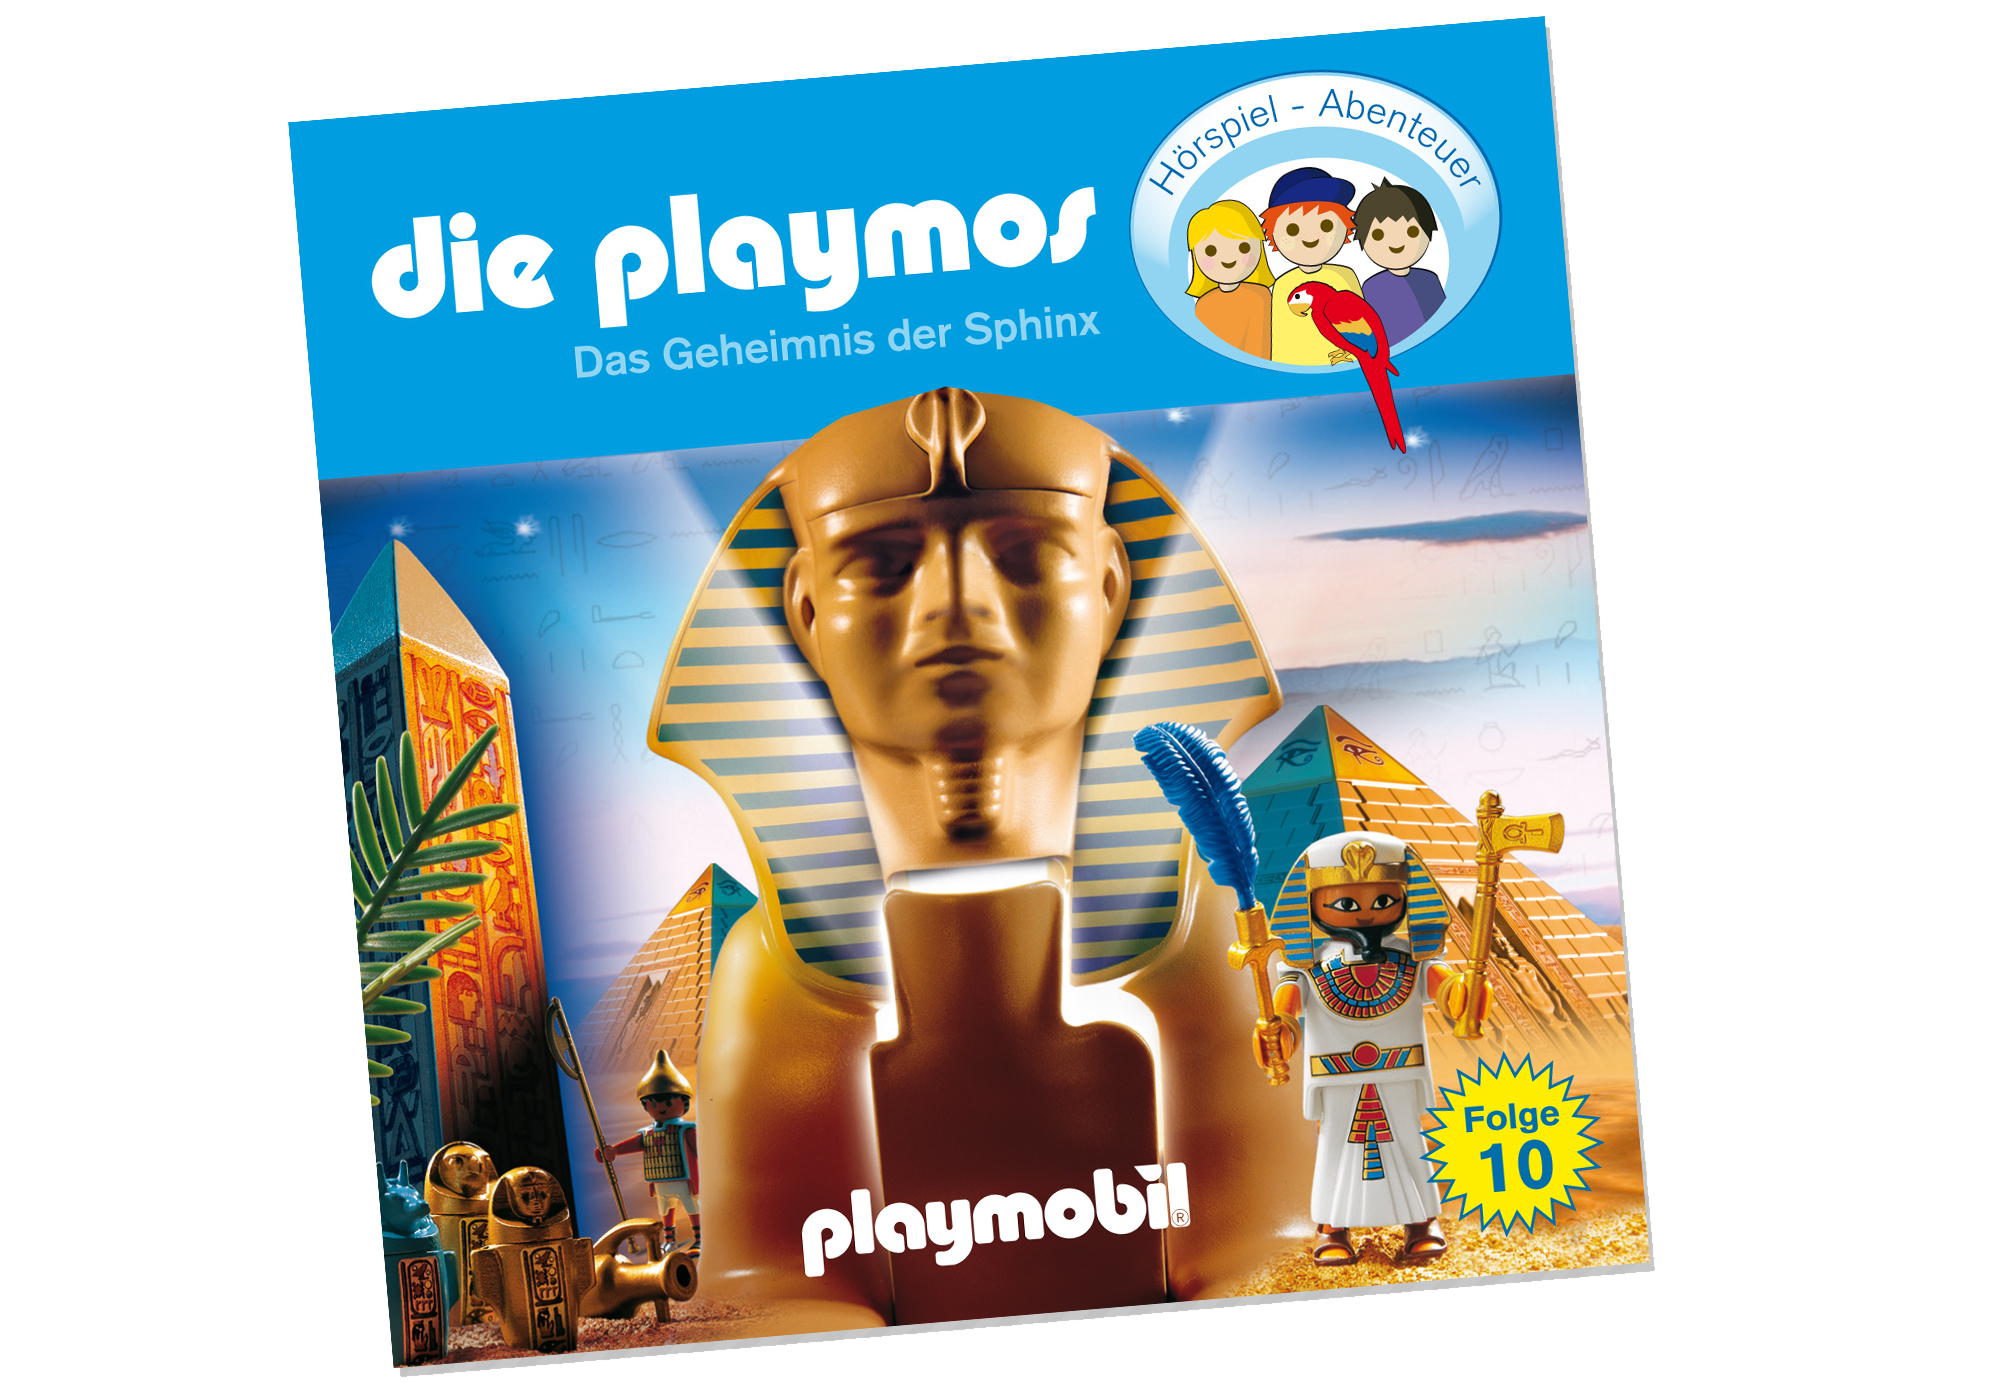 http://media.playmobil.com/i/playmobil/80188_product_detail